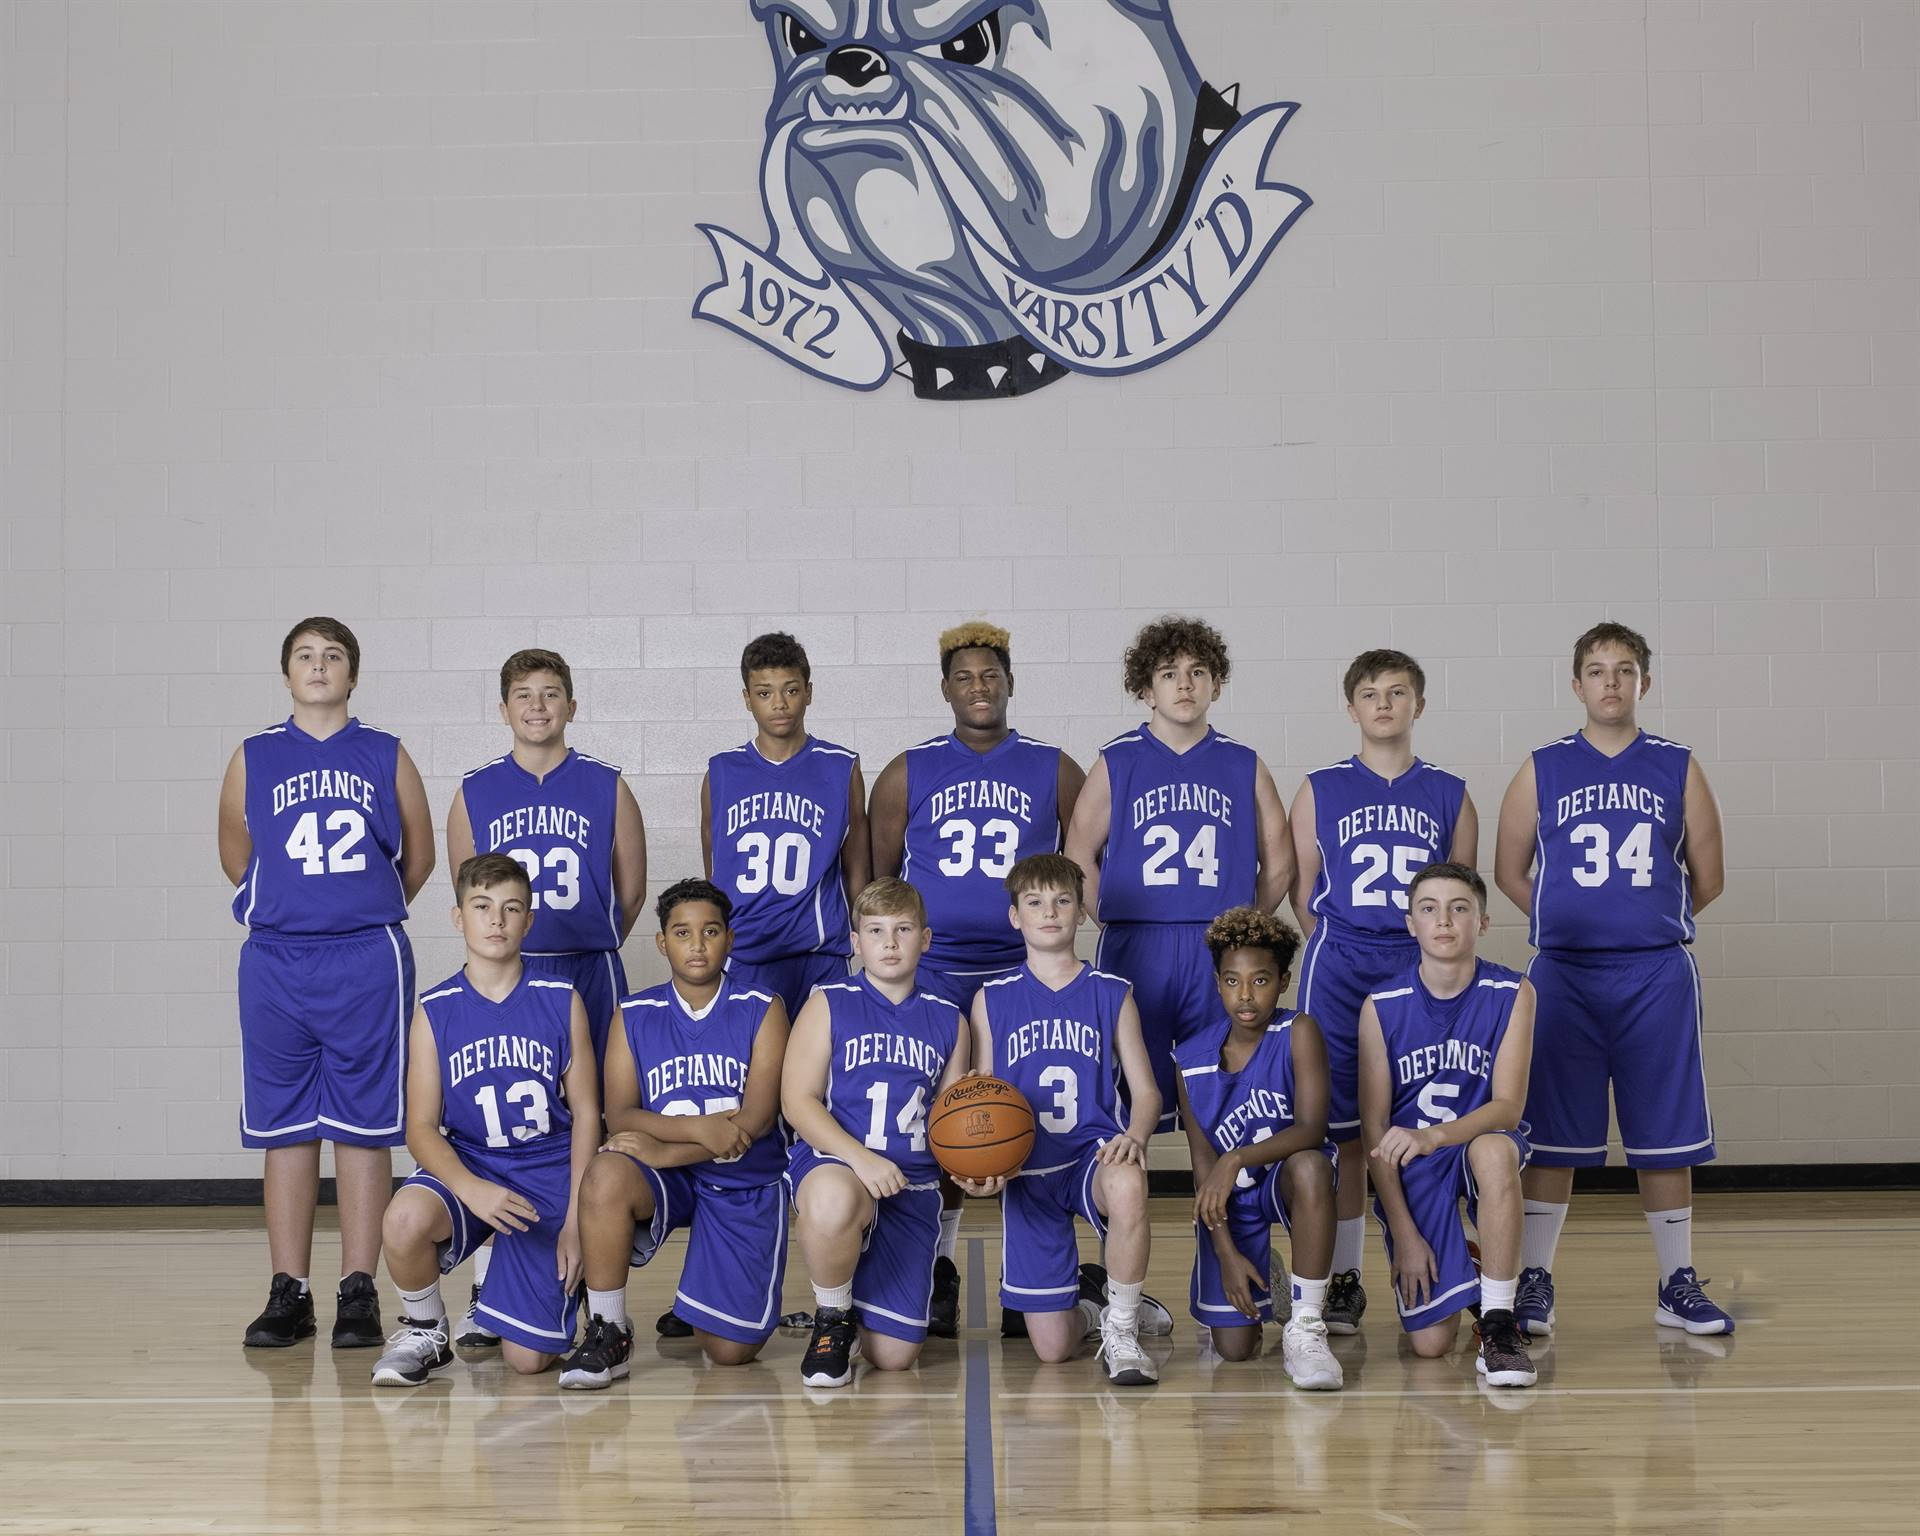 7th Boys Basketball